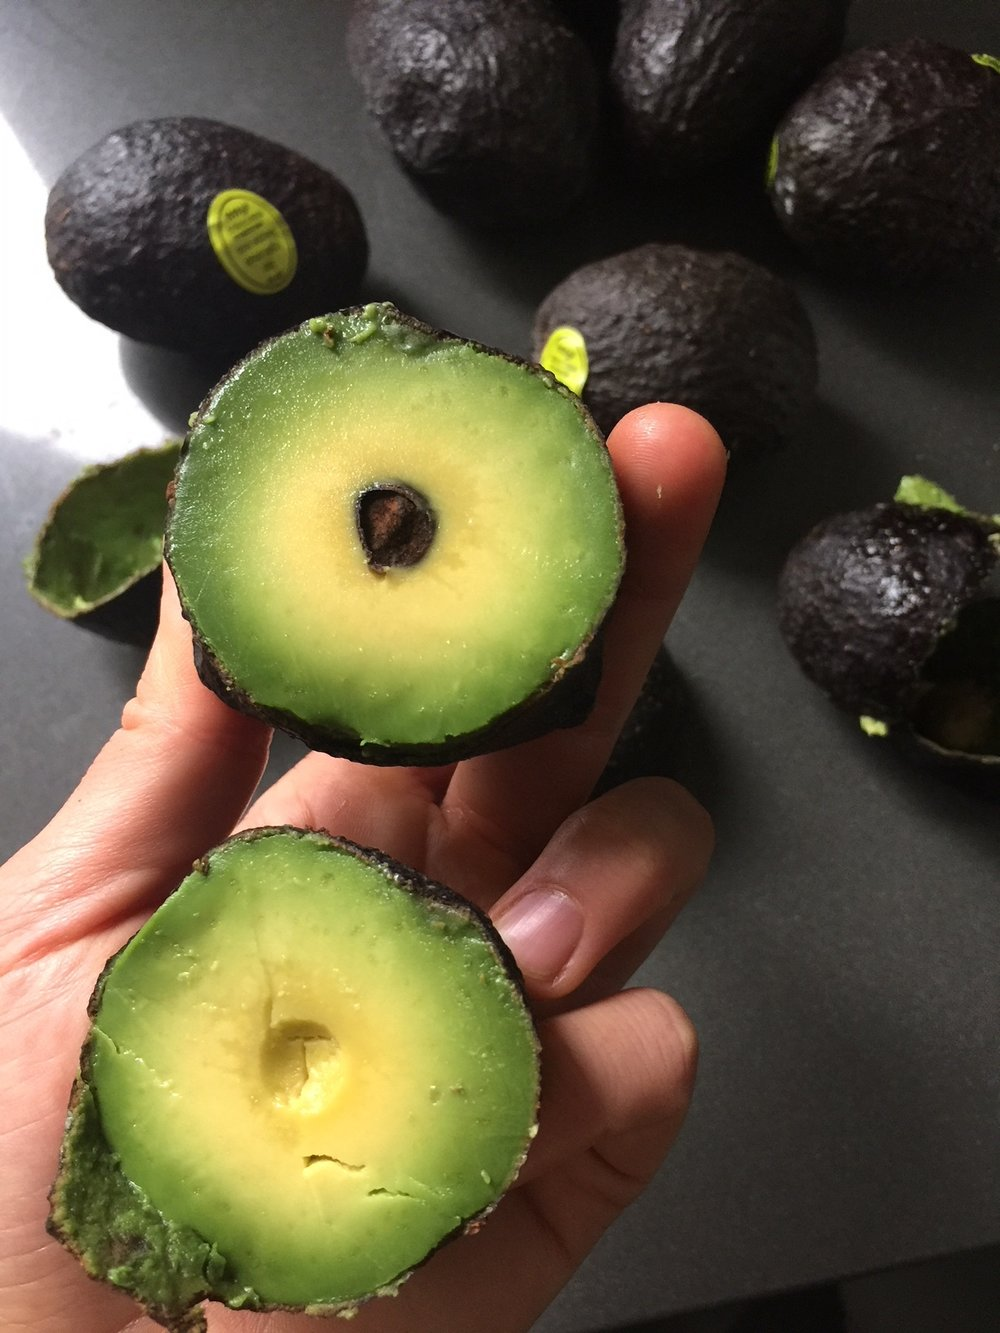 Perfectly ripe avocados on sale = time to make a HUGE batch of chocolate avocado frosting, store it in smaller jars in the freezer.